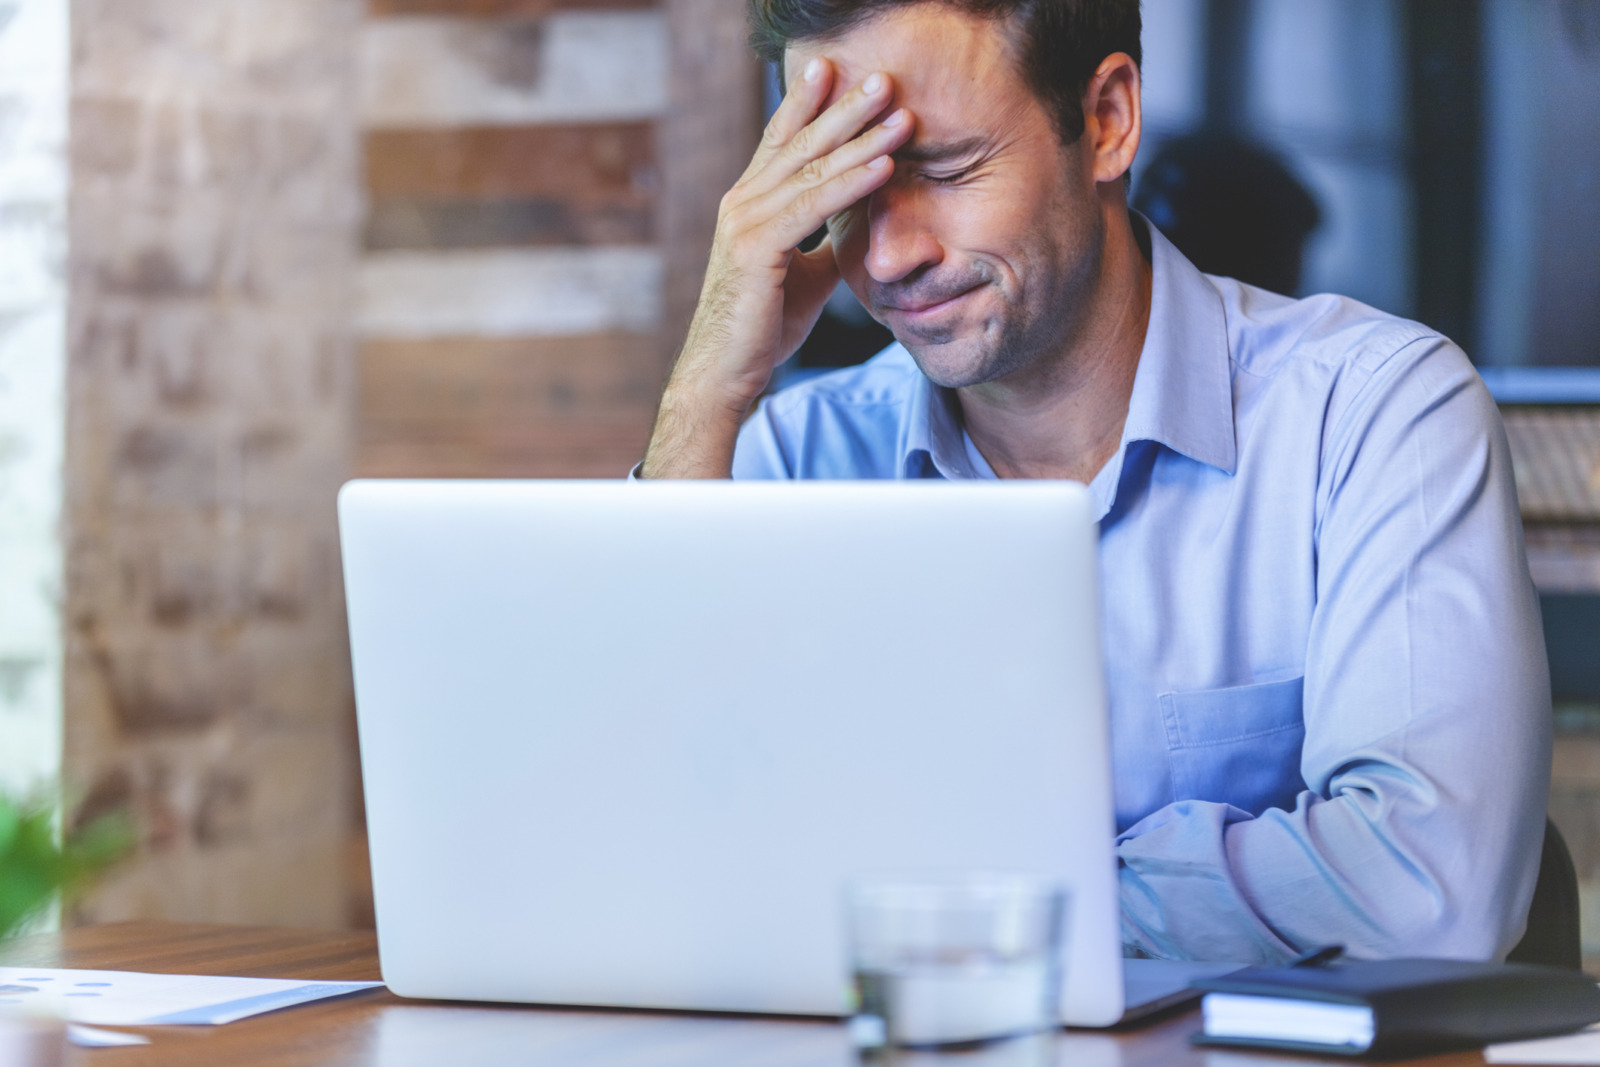 12 Recruitment Marketing Mistakes You Should Avoid